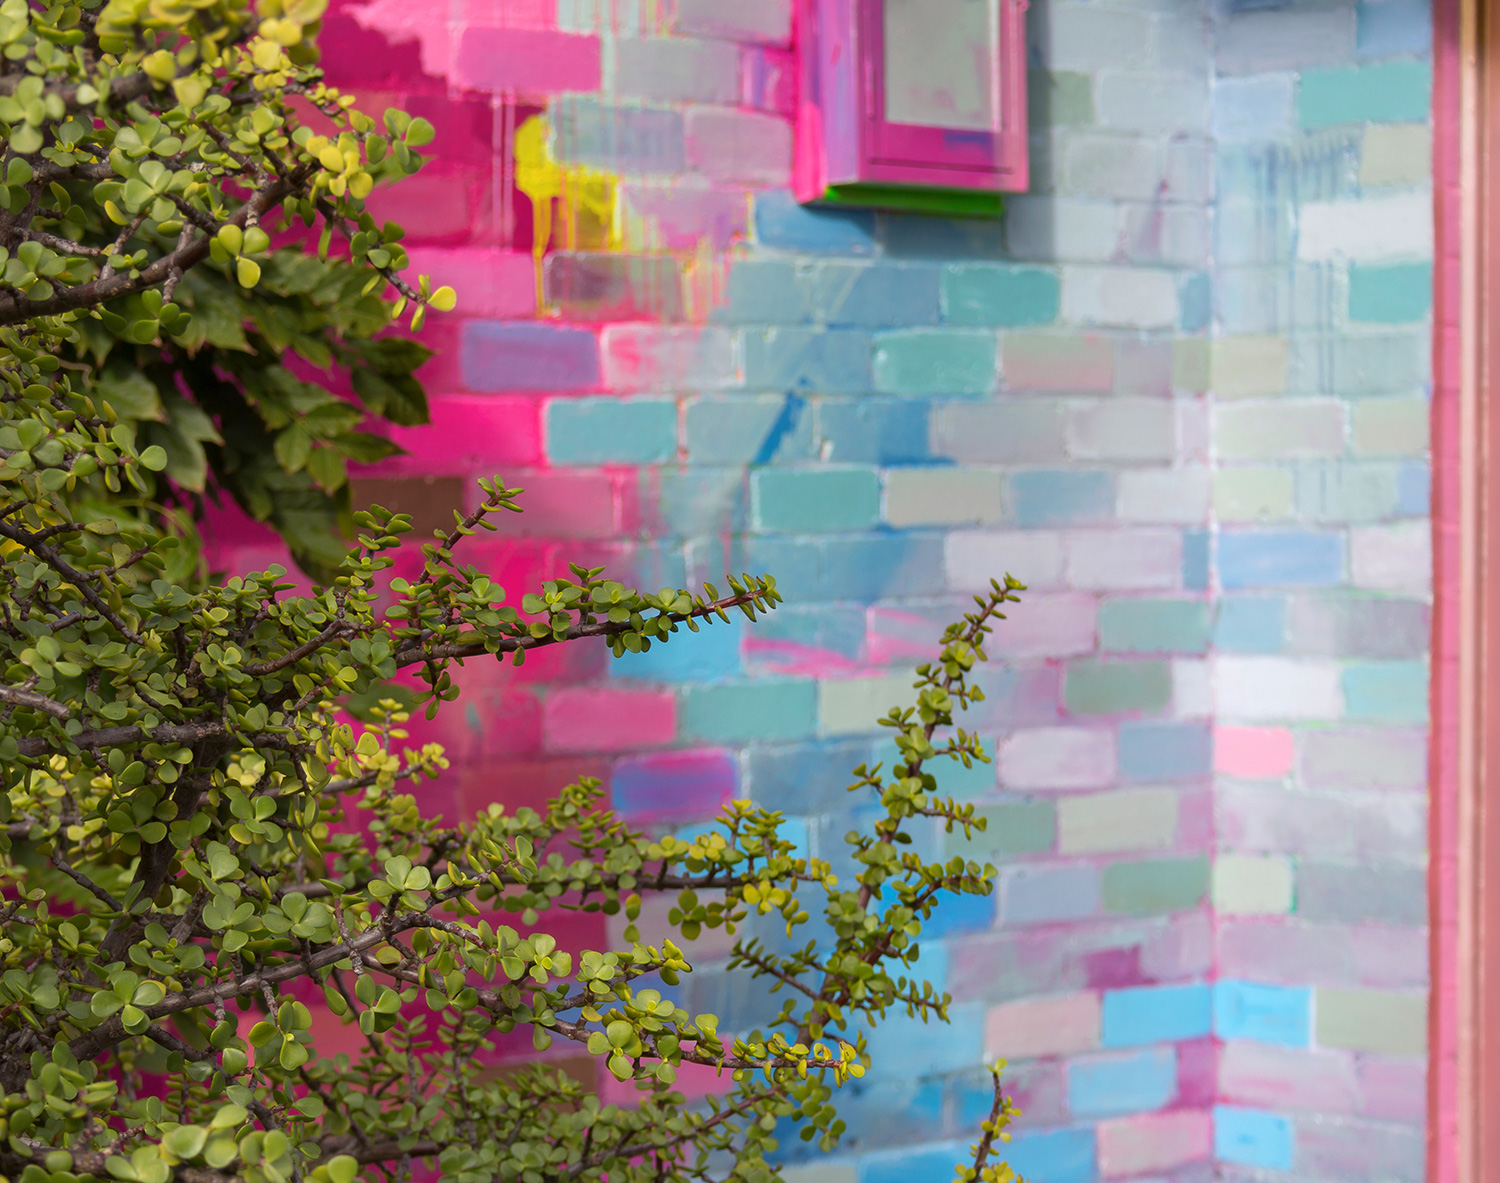 A residential home has been used as a giant art canvas, with a vibrant, abstract design painted on the bricks in a color palette of pink, blue and metallic. Green foliage contrasts against the painted backdrop.